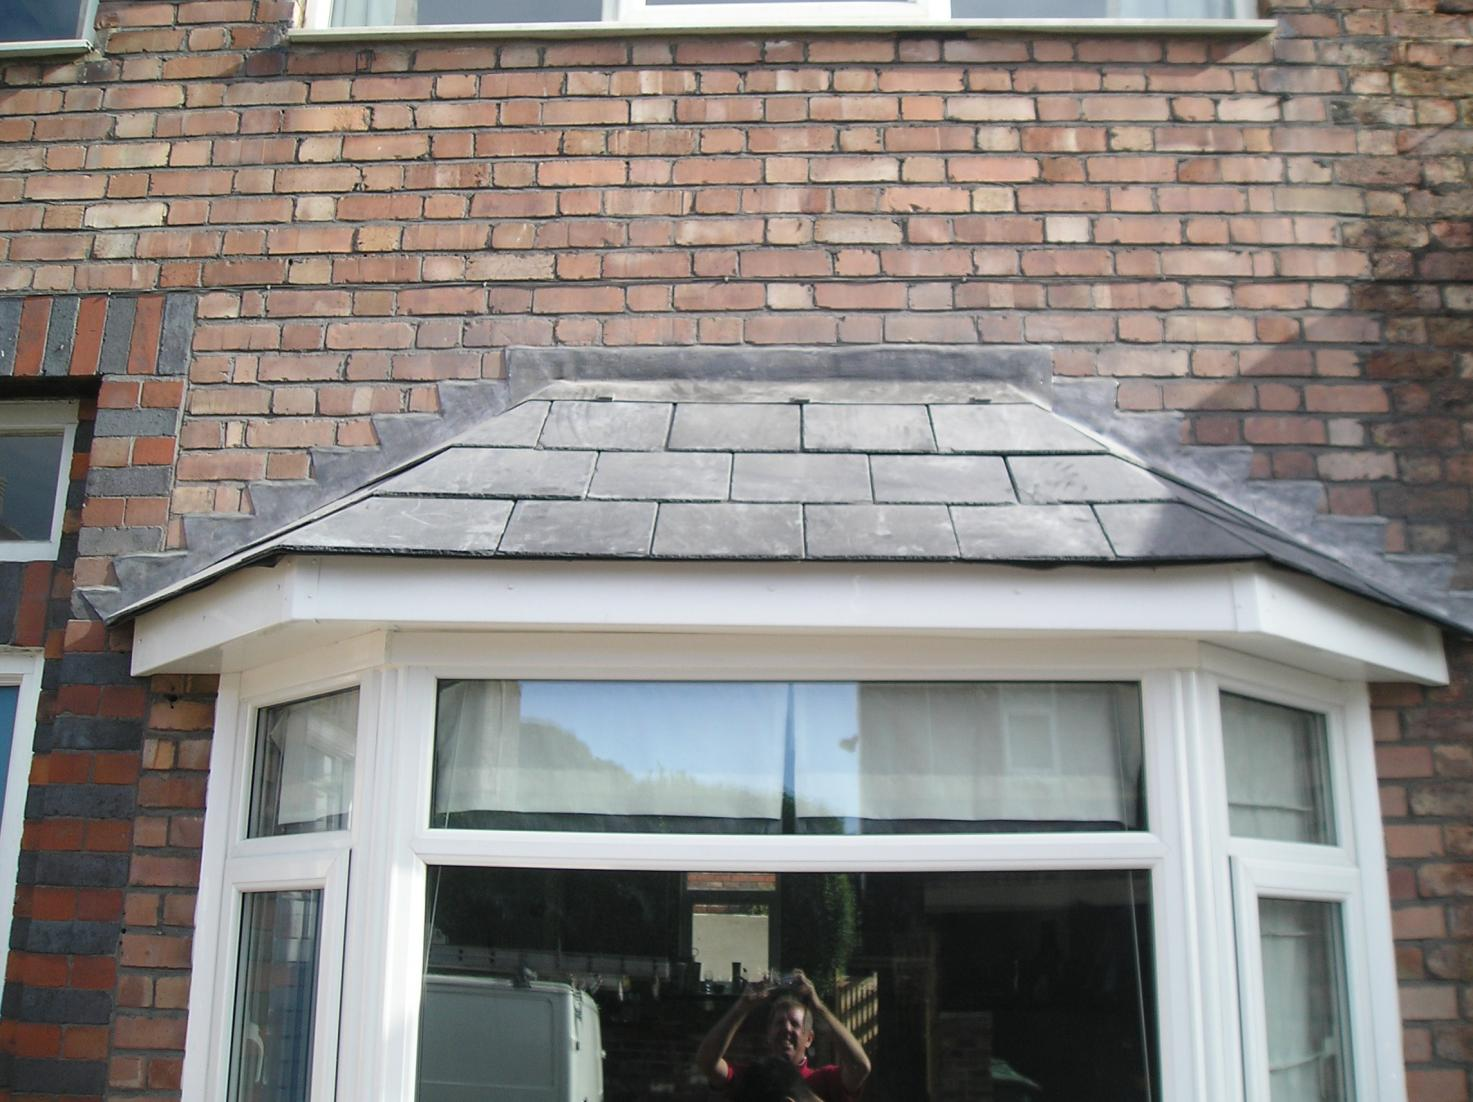 Step Flashing Vs L Shaped Flashing Roofing Contractor